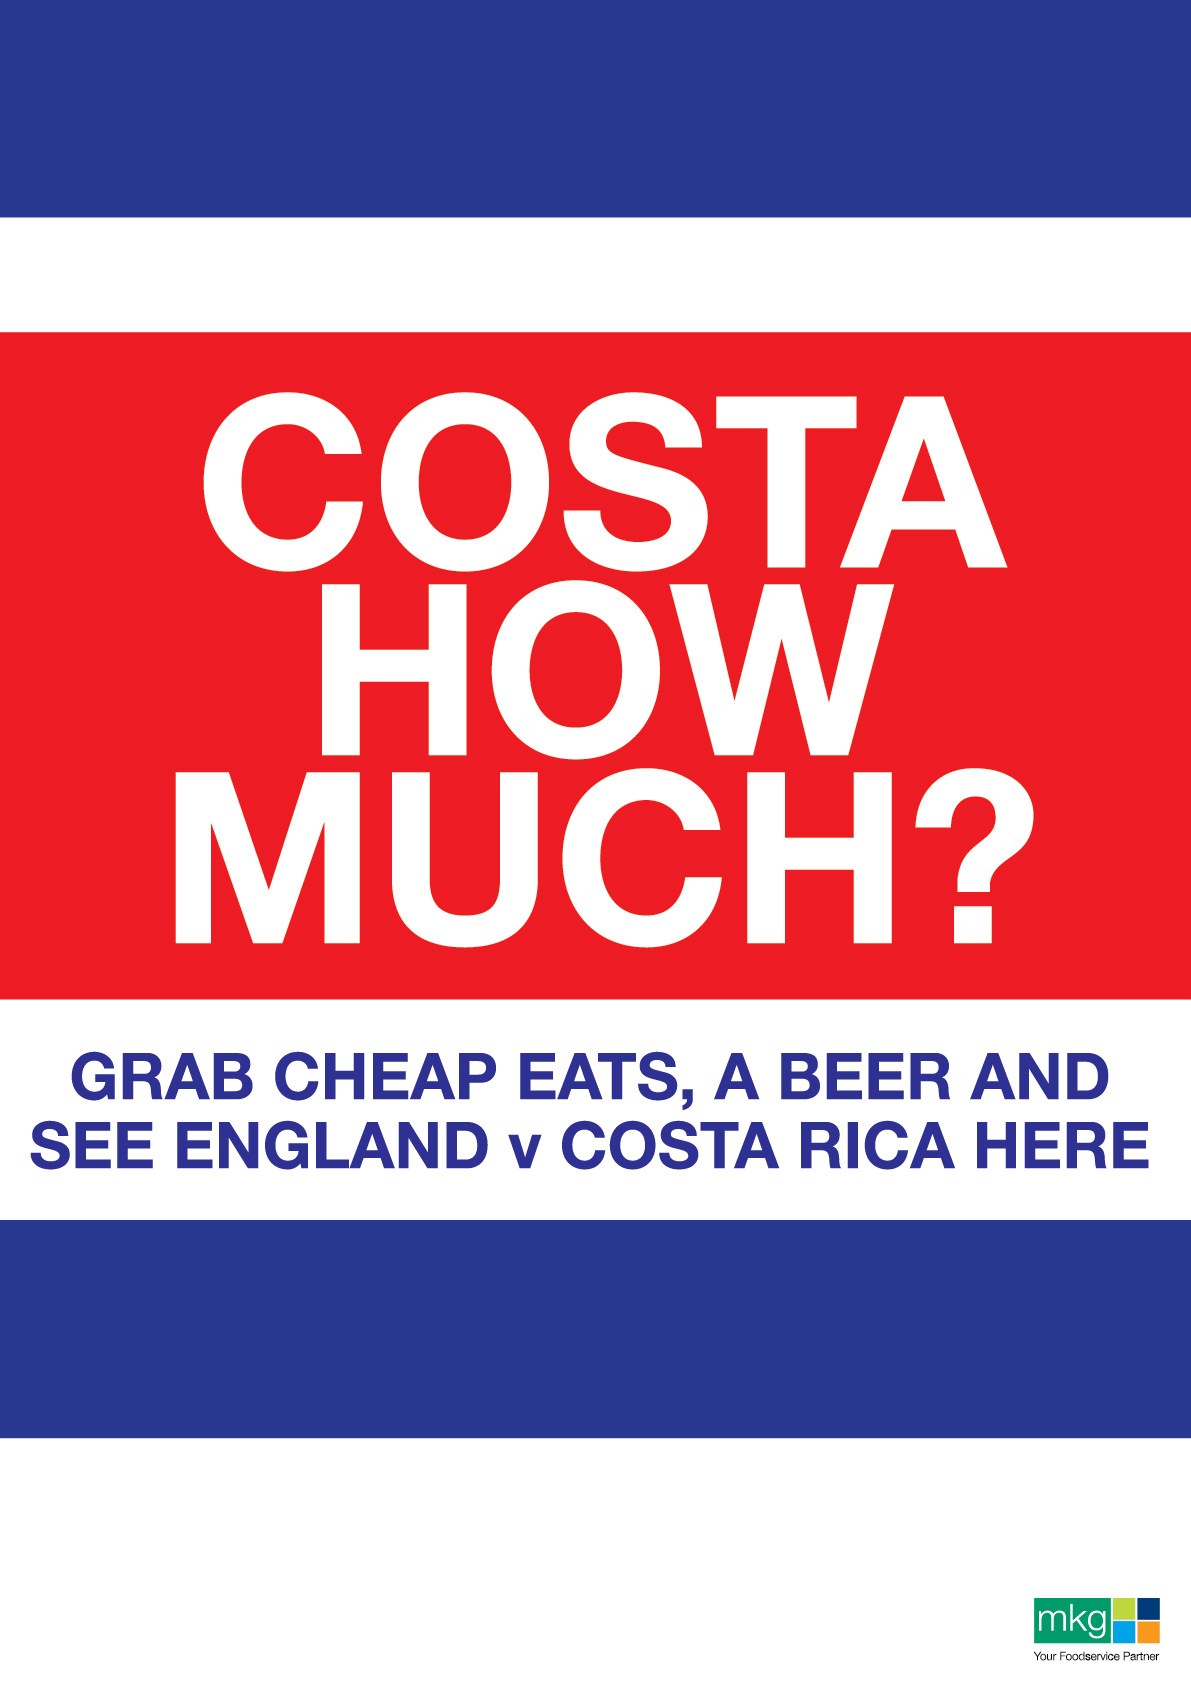 Costa how much? World Cup Poster - MKG Foods